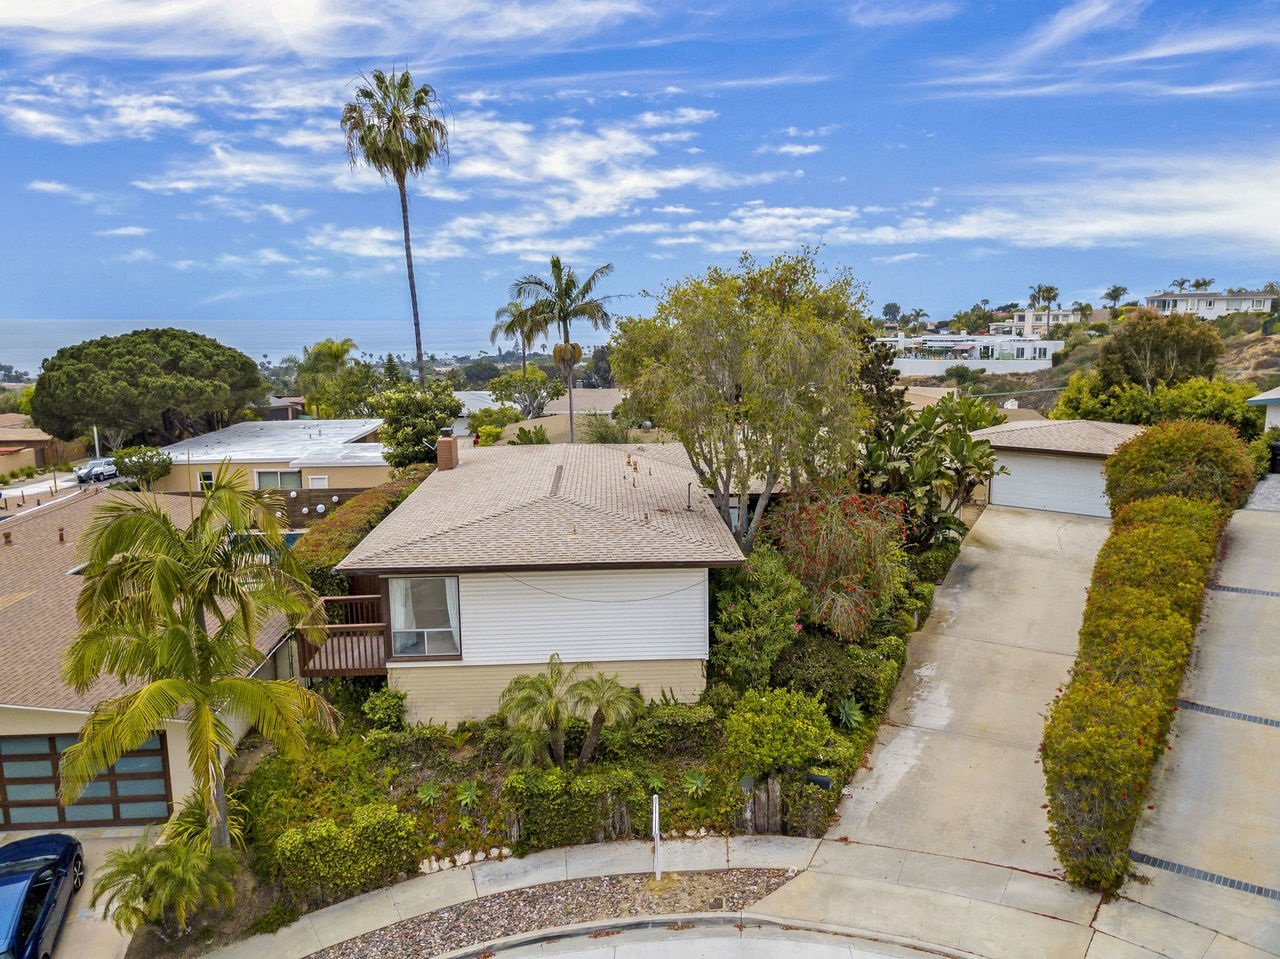 Incredible OCEAN & BAY VIEWS in this highly coveted Pacific Beach neighborhood. Located at the top of a cul-de-sac this location is quiet and private. The open floor plan is ideal for entertaining with an indoor/outdoor flow. Enjoy mature landscaping and a pie shaped lot creating spacious outdoor space. Take in the bay and ocean views from the family room, kitchen, master bedroom, and backyard. The living room has a separate entrance ideal for an office or in-law suite. This won't last long!